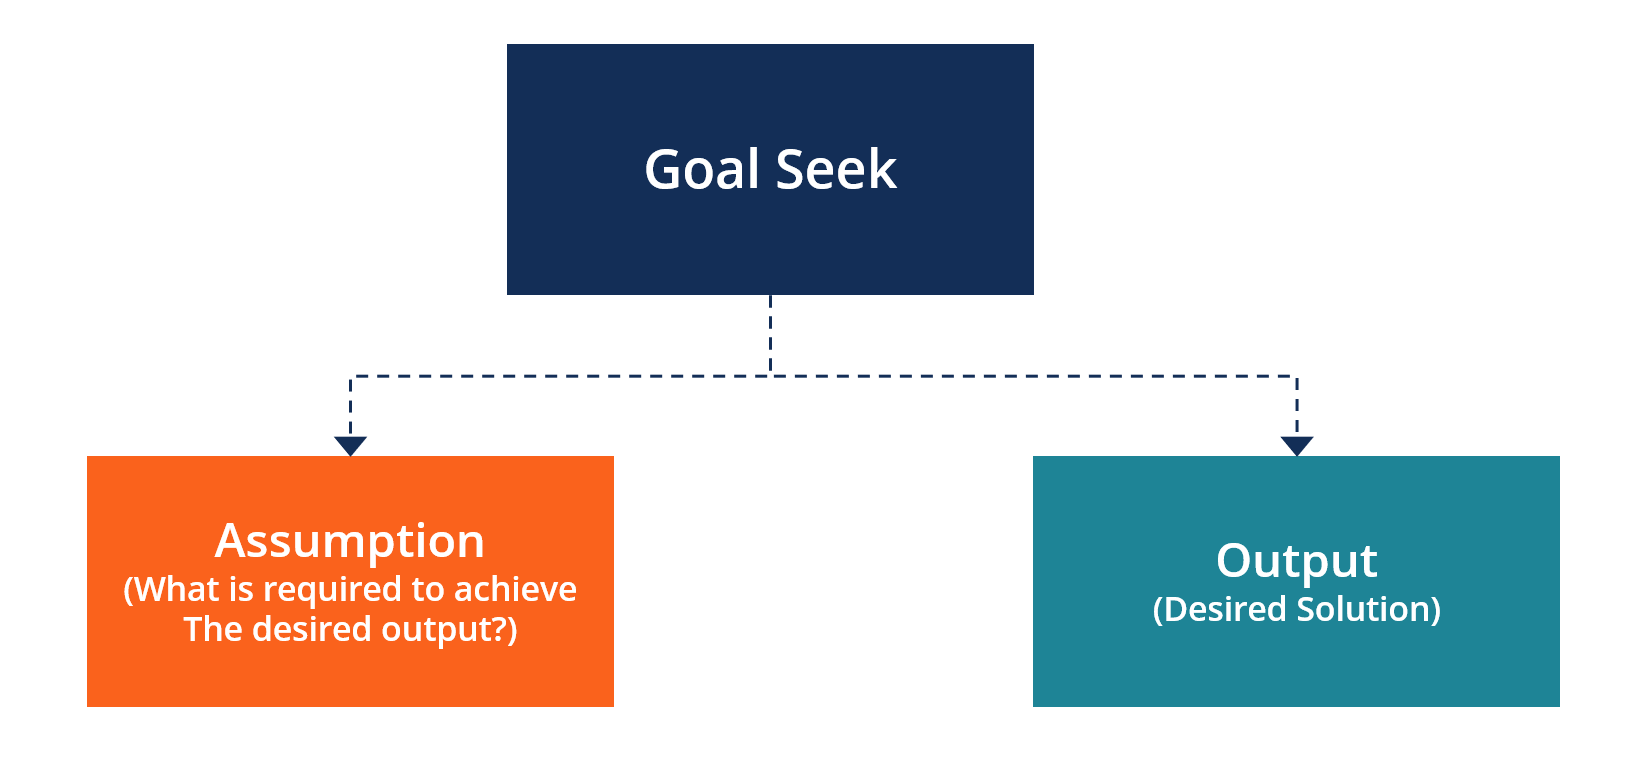 Goal Seek Excel - Overview, How to Use, and Video Explanation